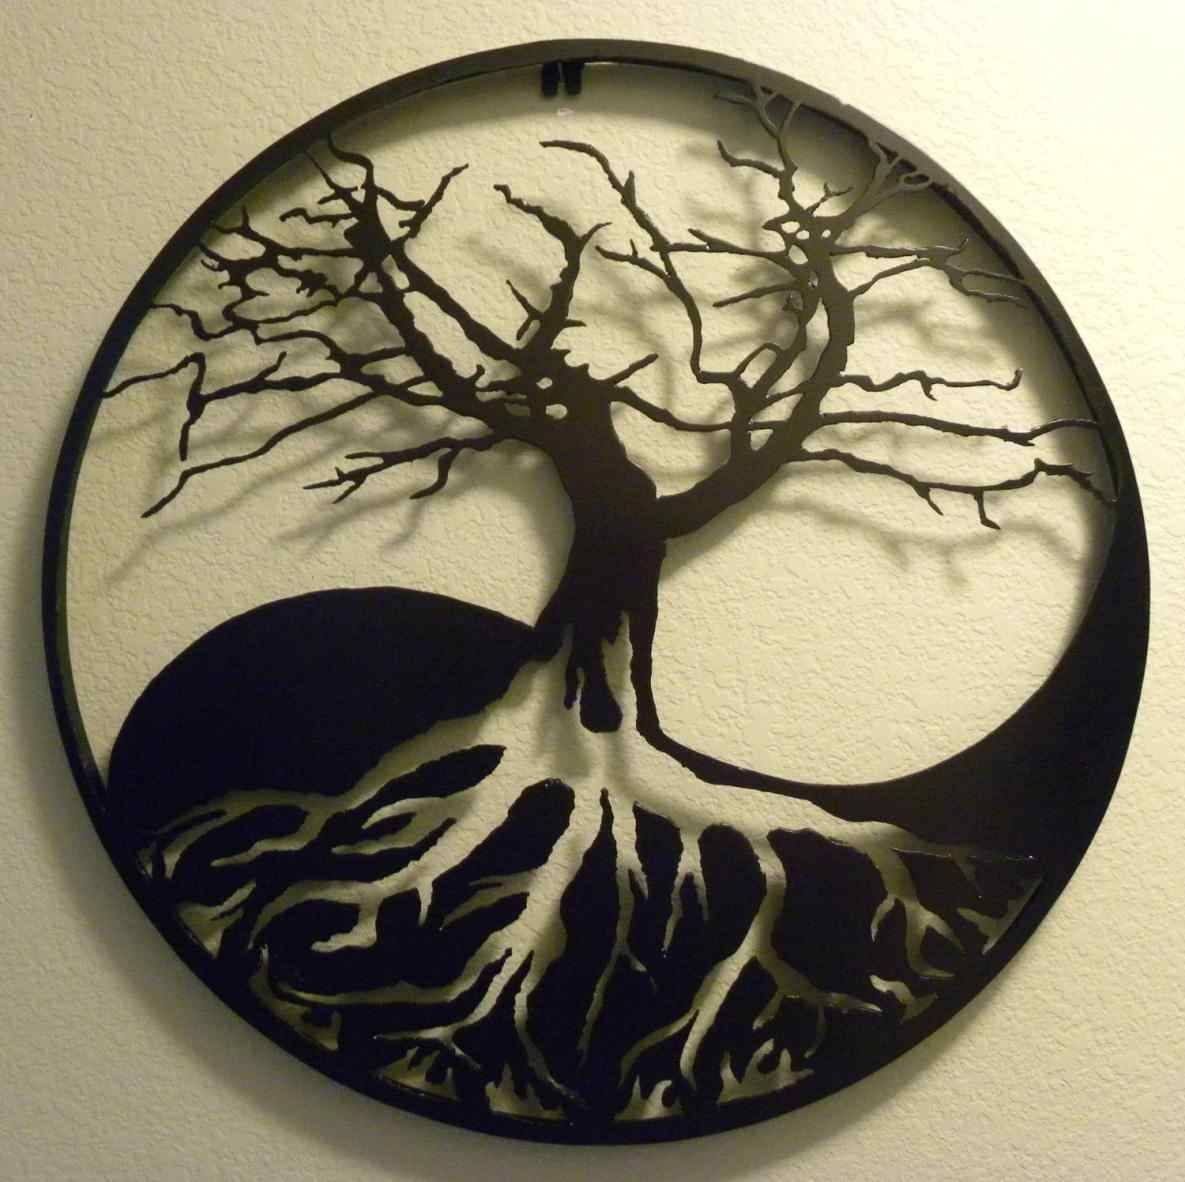 Metal Oak Tree Wall Art | Home Interior Decor Throughout Newest Oak Tree Wall Art (View 12 of 30)